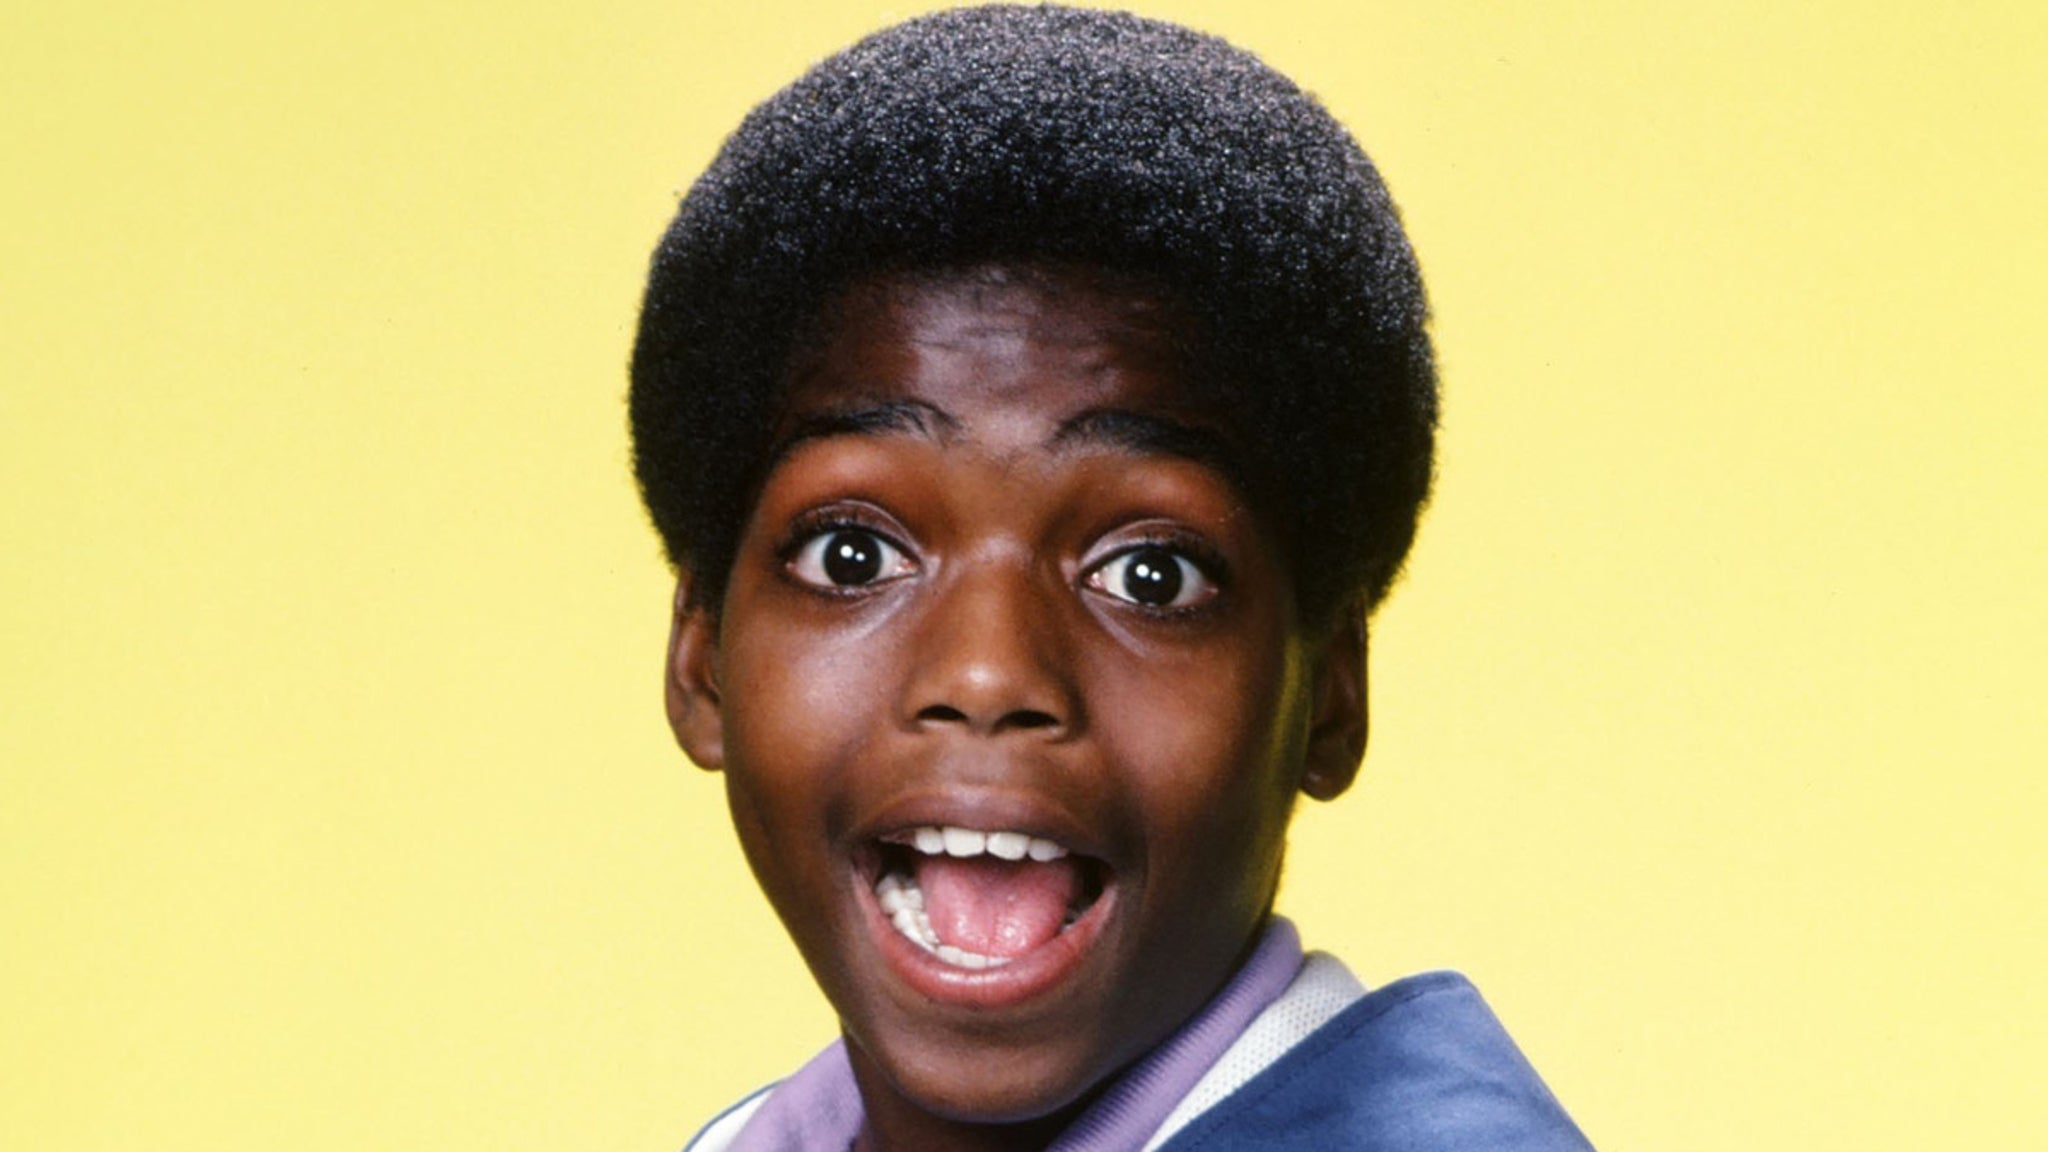 Dudley Johnson on 'Diff'rent Strokes' 'Memba Him?!